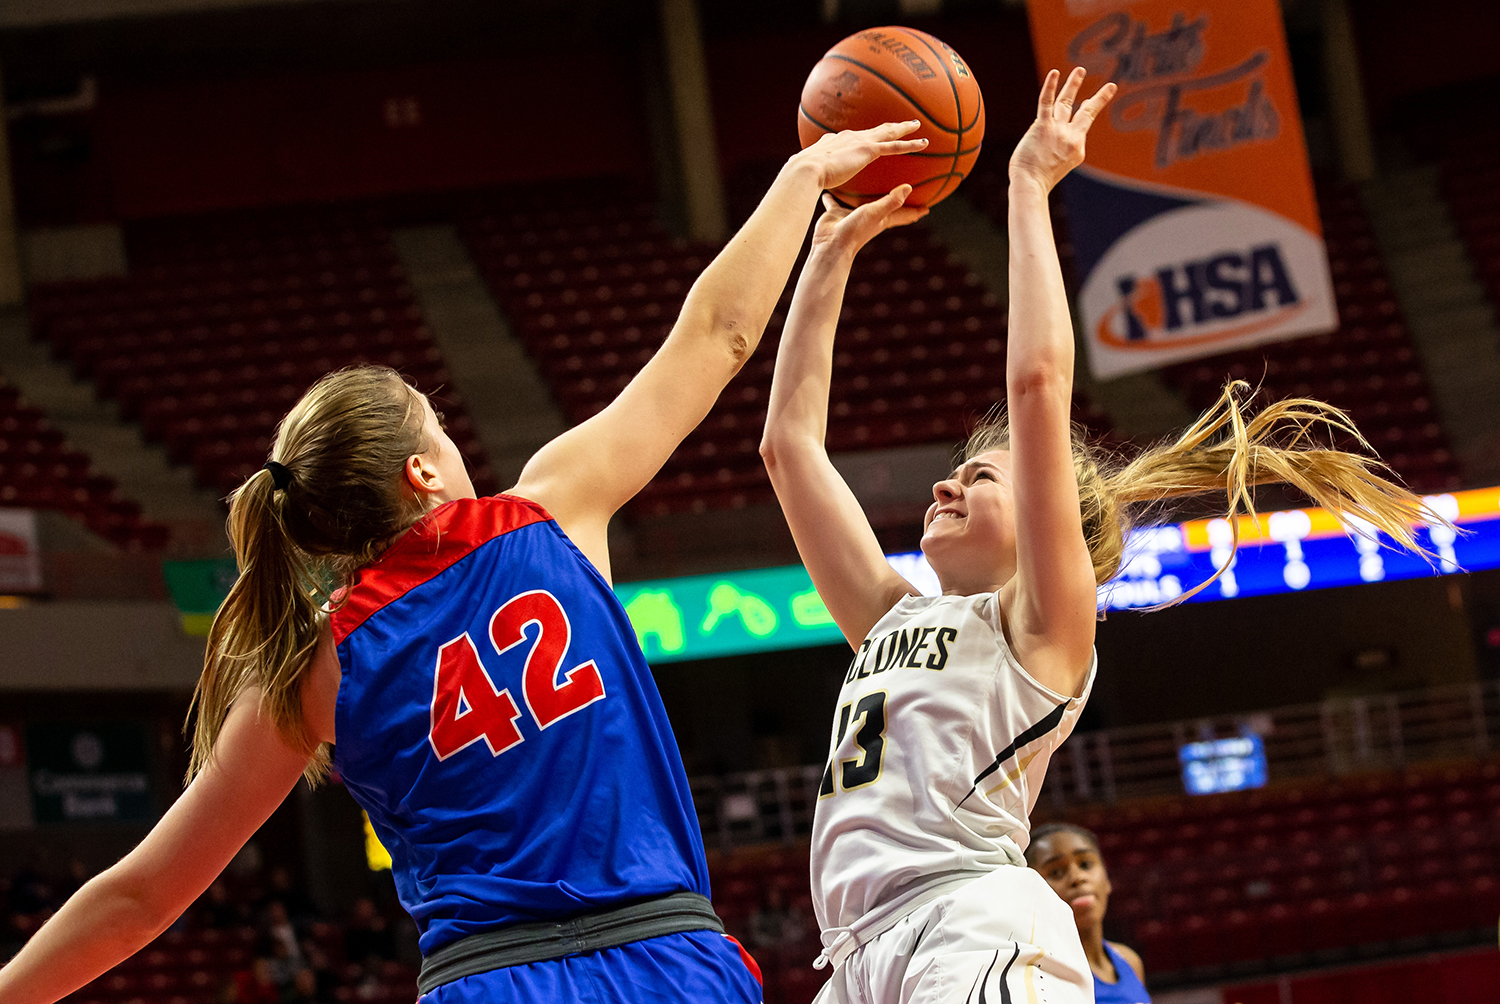 Sacred Heart-Griffin's Payton Vorreyer (13) gets her shot off under pressure from Glen Ellyn Glenbard South's Maggie Bair (42) in the fourth quarter during the IHSA Class 3A State Tournament semifinals at Redbird Arena, Friday, March 1, 2019, in Normal, Ill. [Justin L. Fowler/The State Journal-Register]